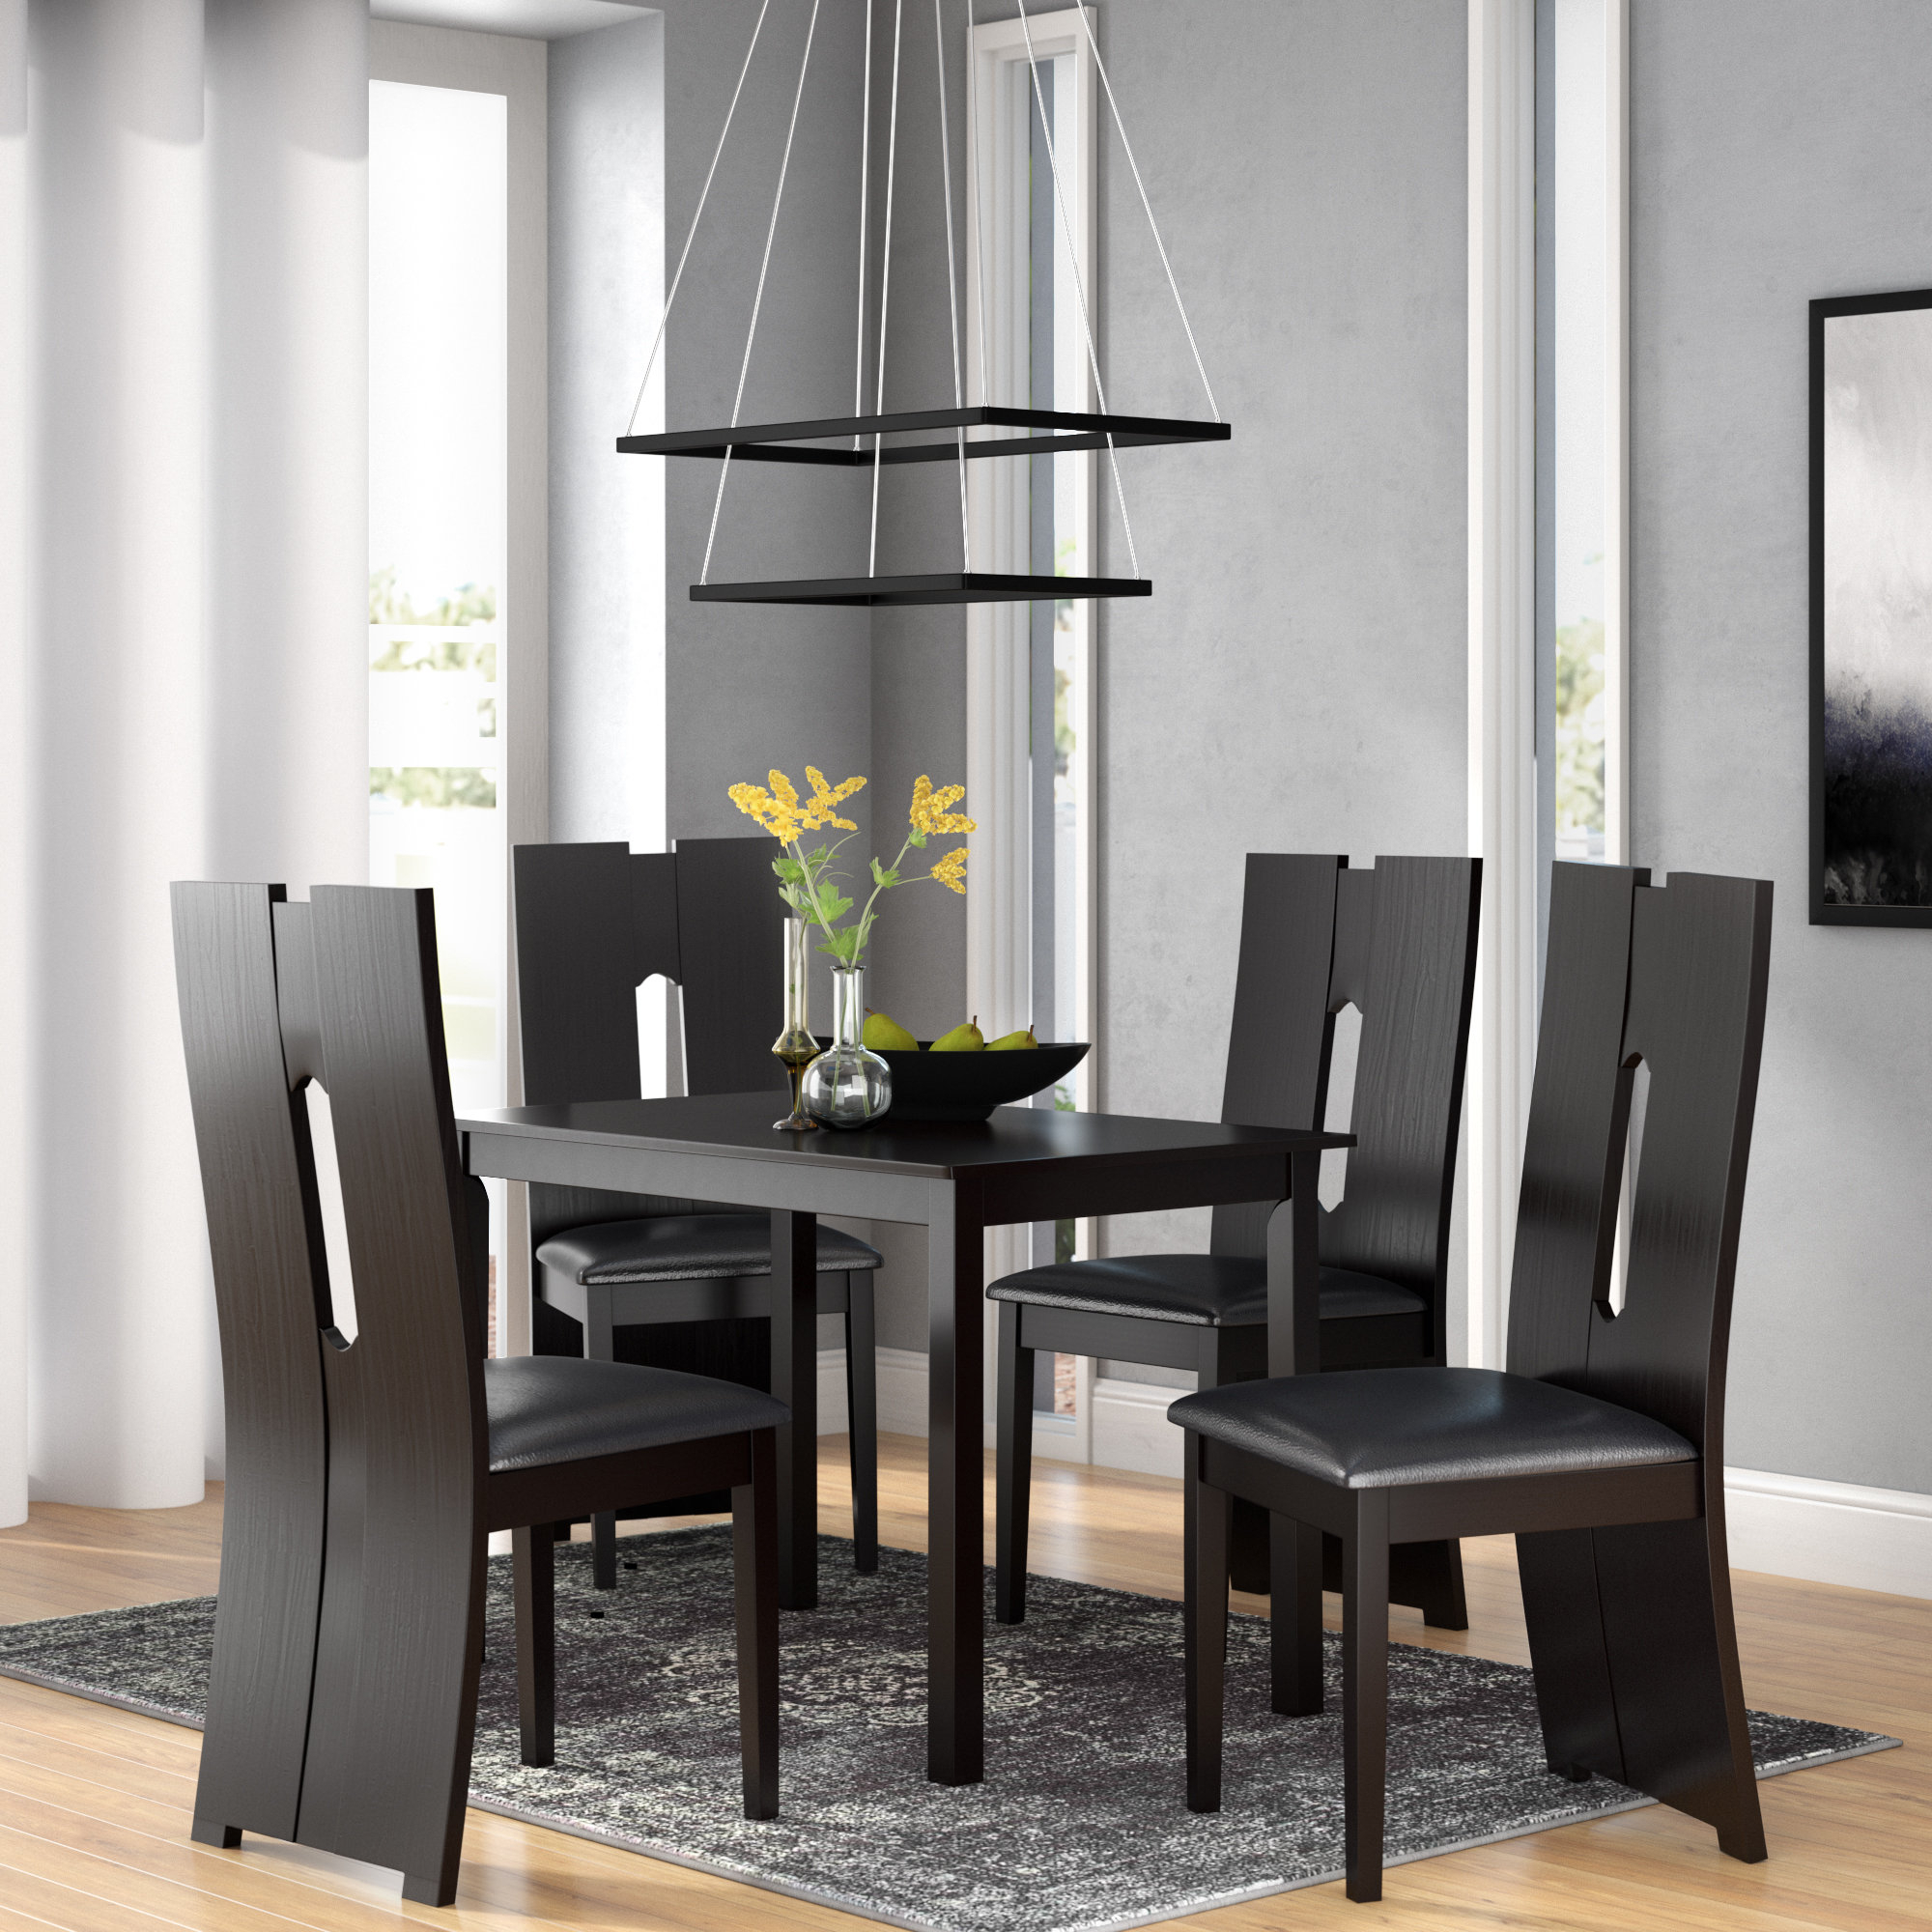 Most Up To Date Onsted Modern And Contemporary 5 Piece Breakfast Nook Dining Set Inside Maynard 5 Piece Dining Sets (View 11 of 20)